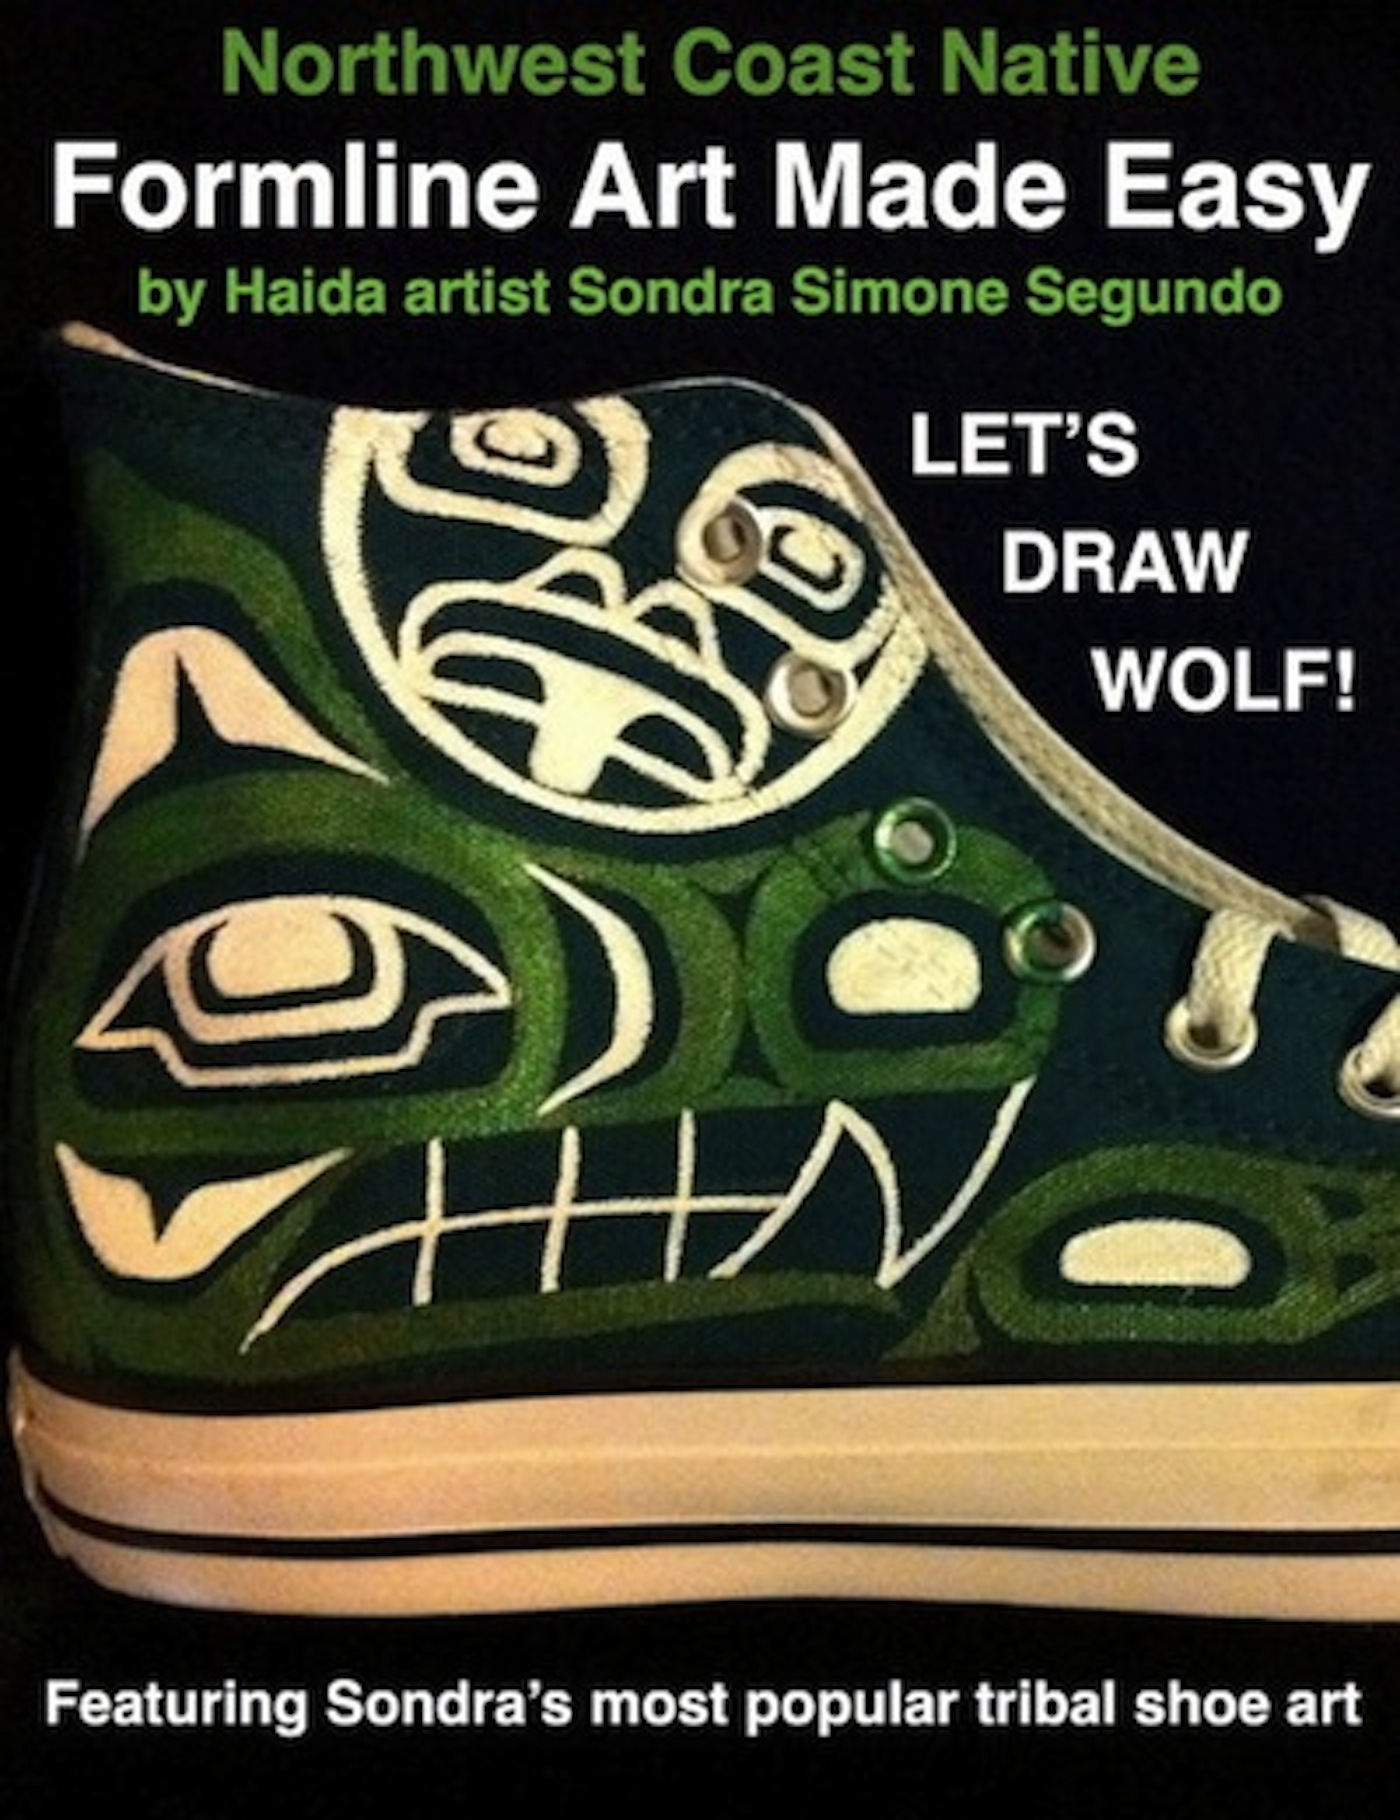 Northwest Coast Native Formline Art Made Easy-Let's Draw Wolf